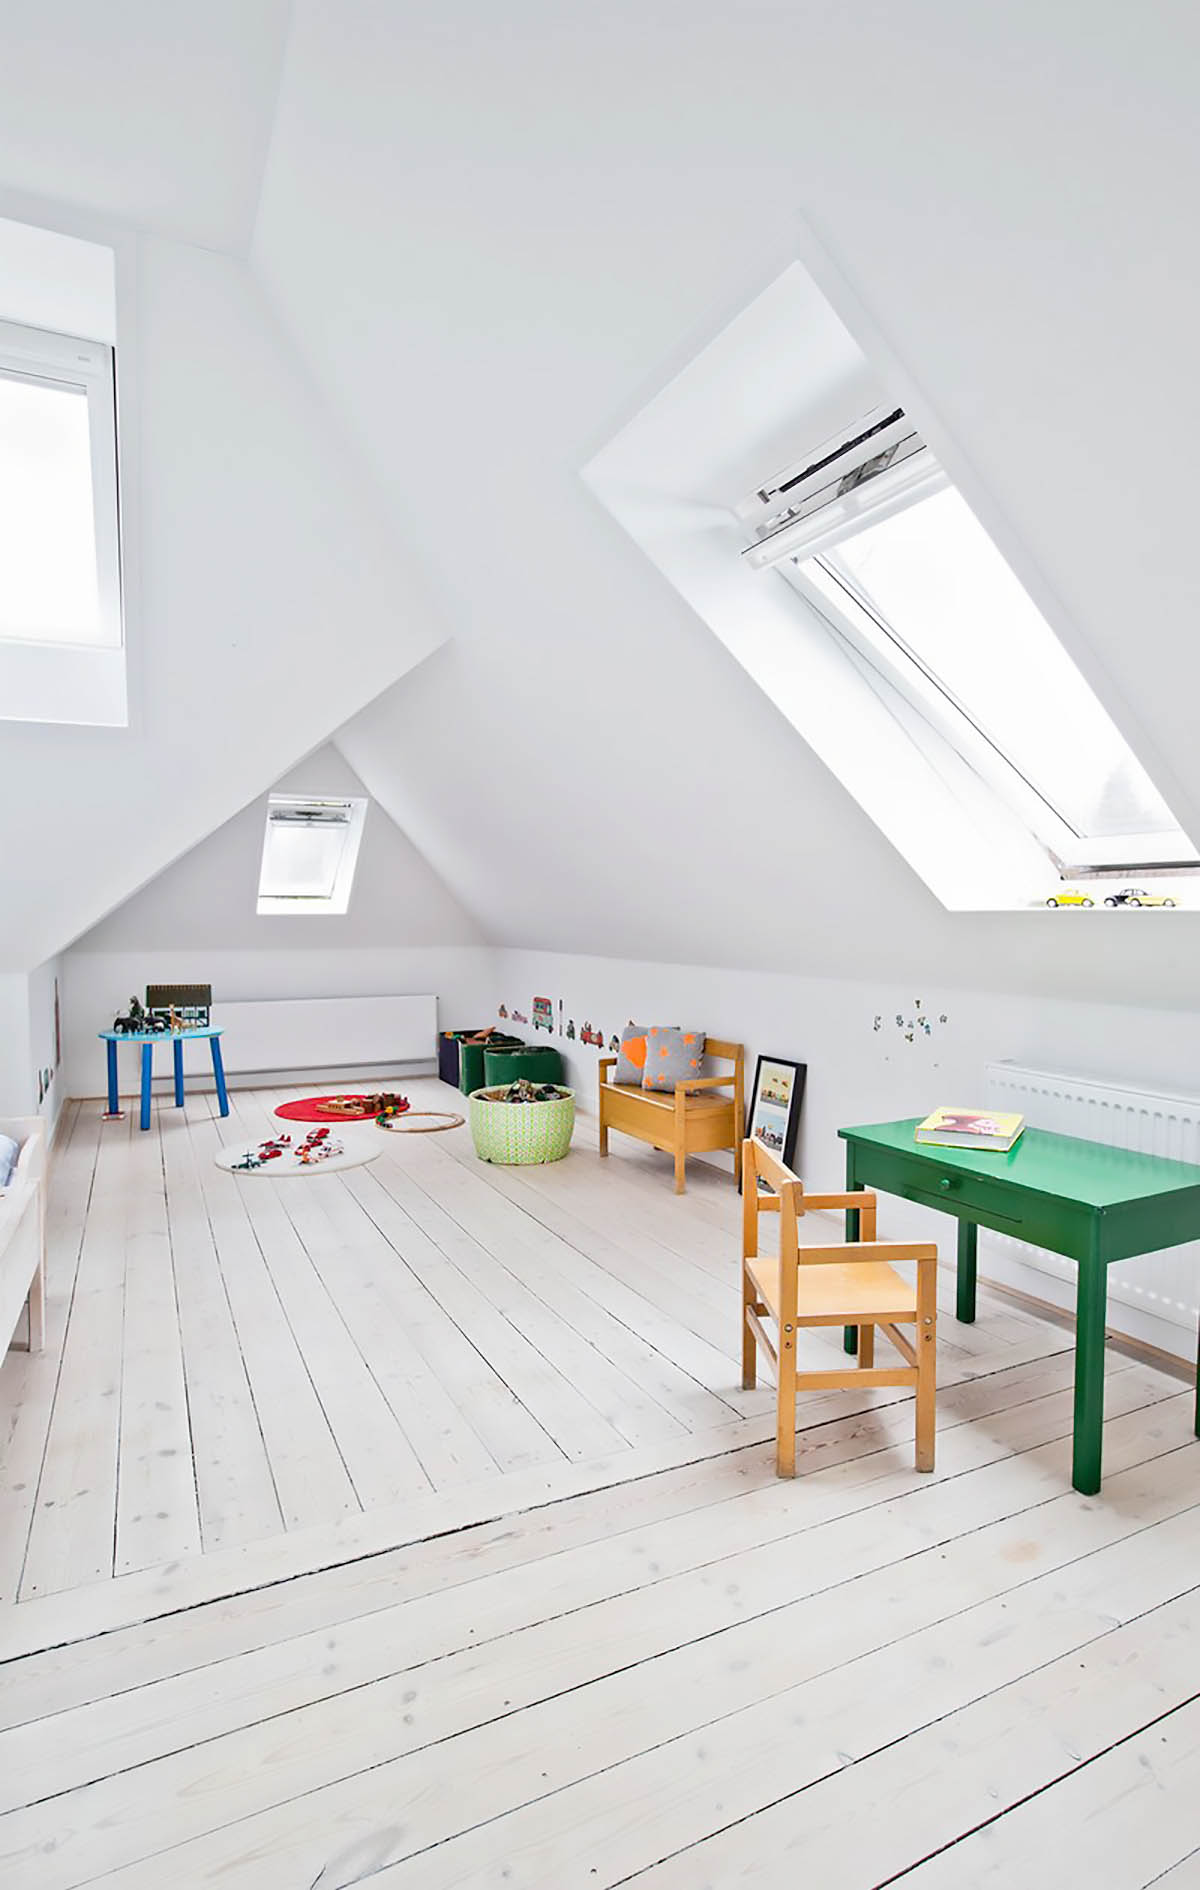 A light-filled attic children's playroom